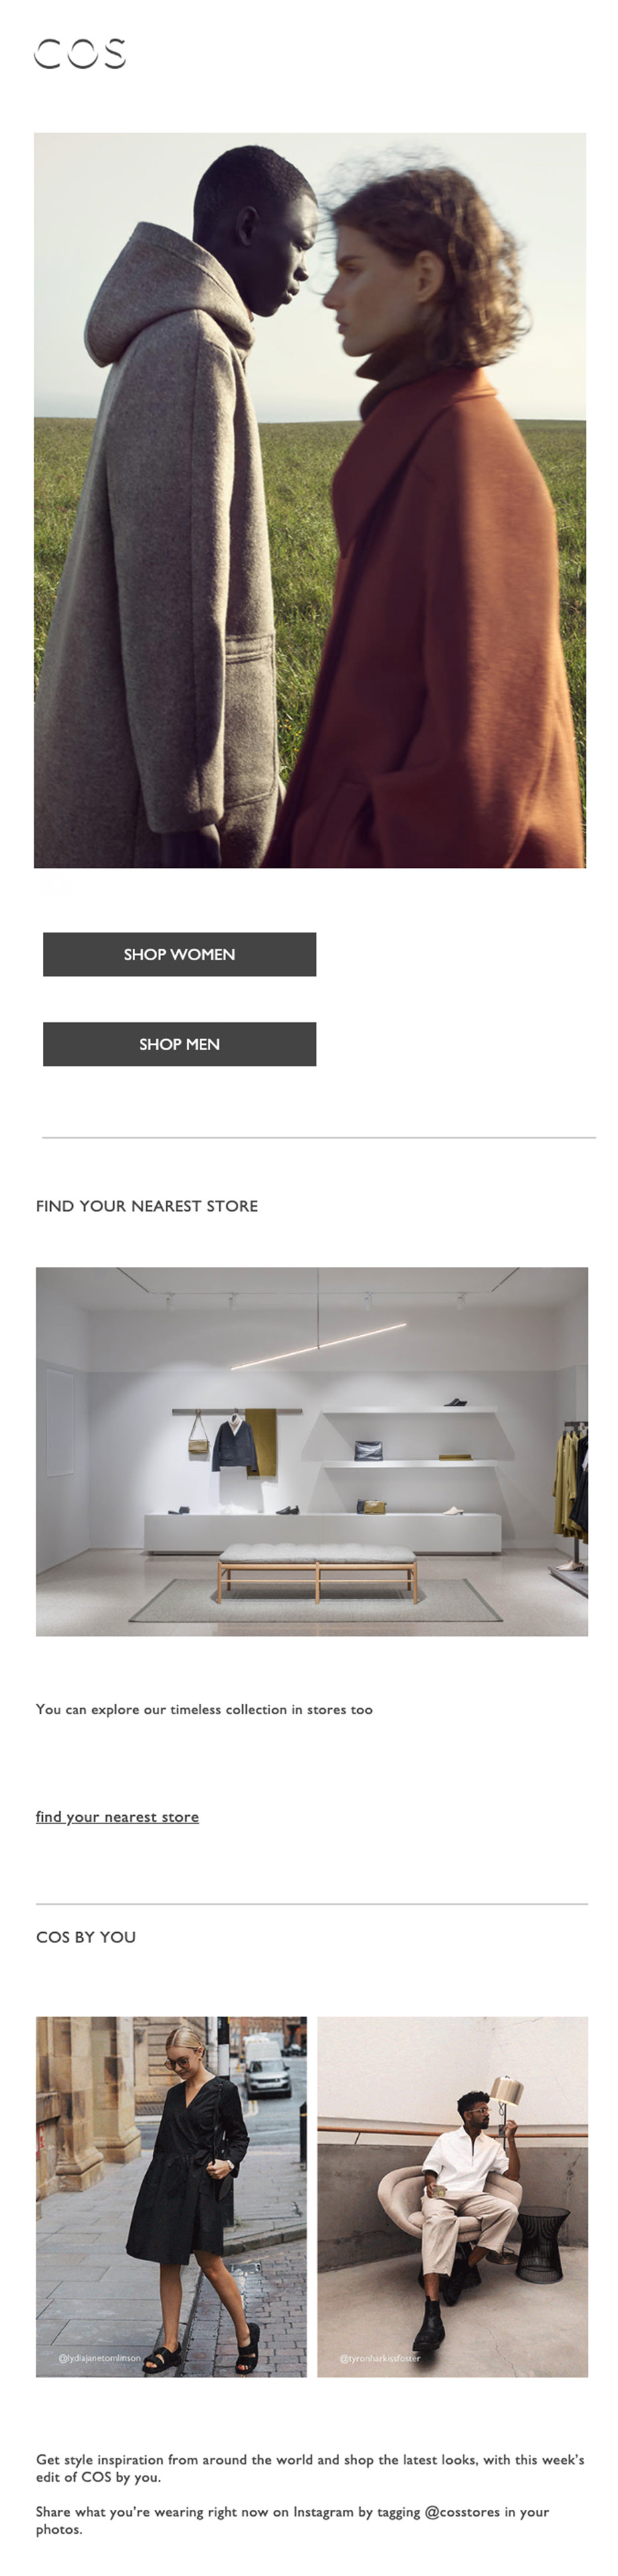 Welcome email by COS